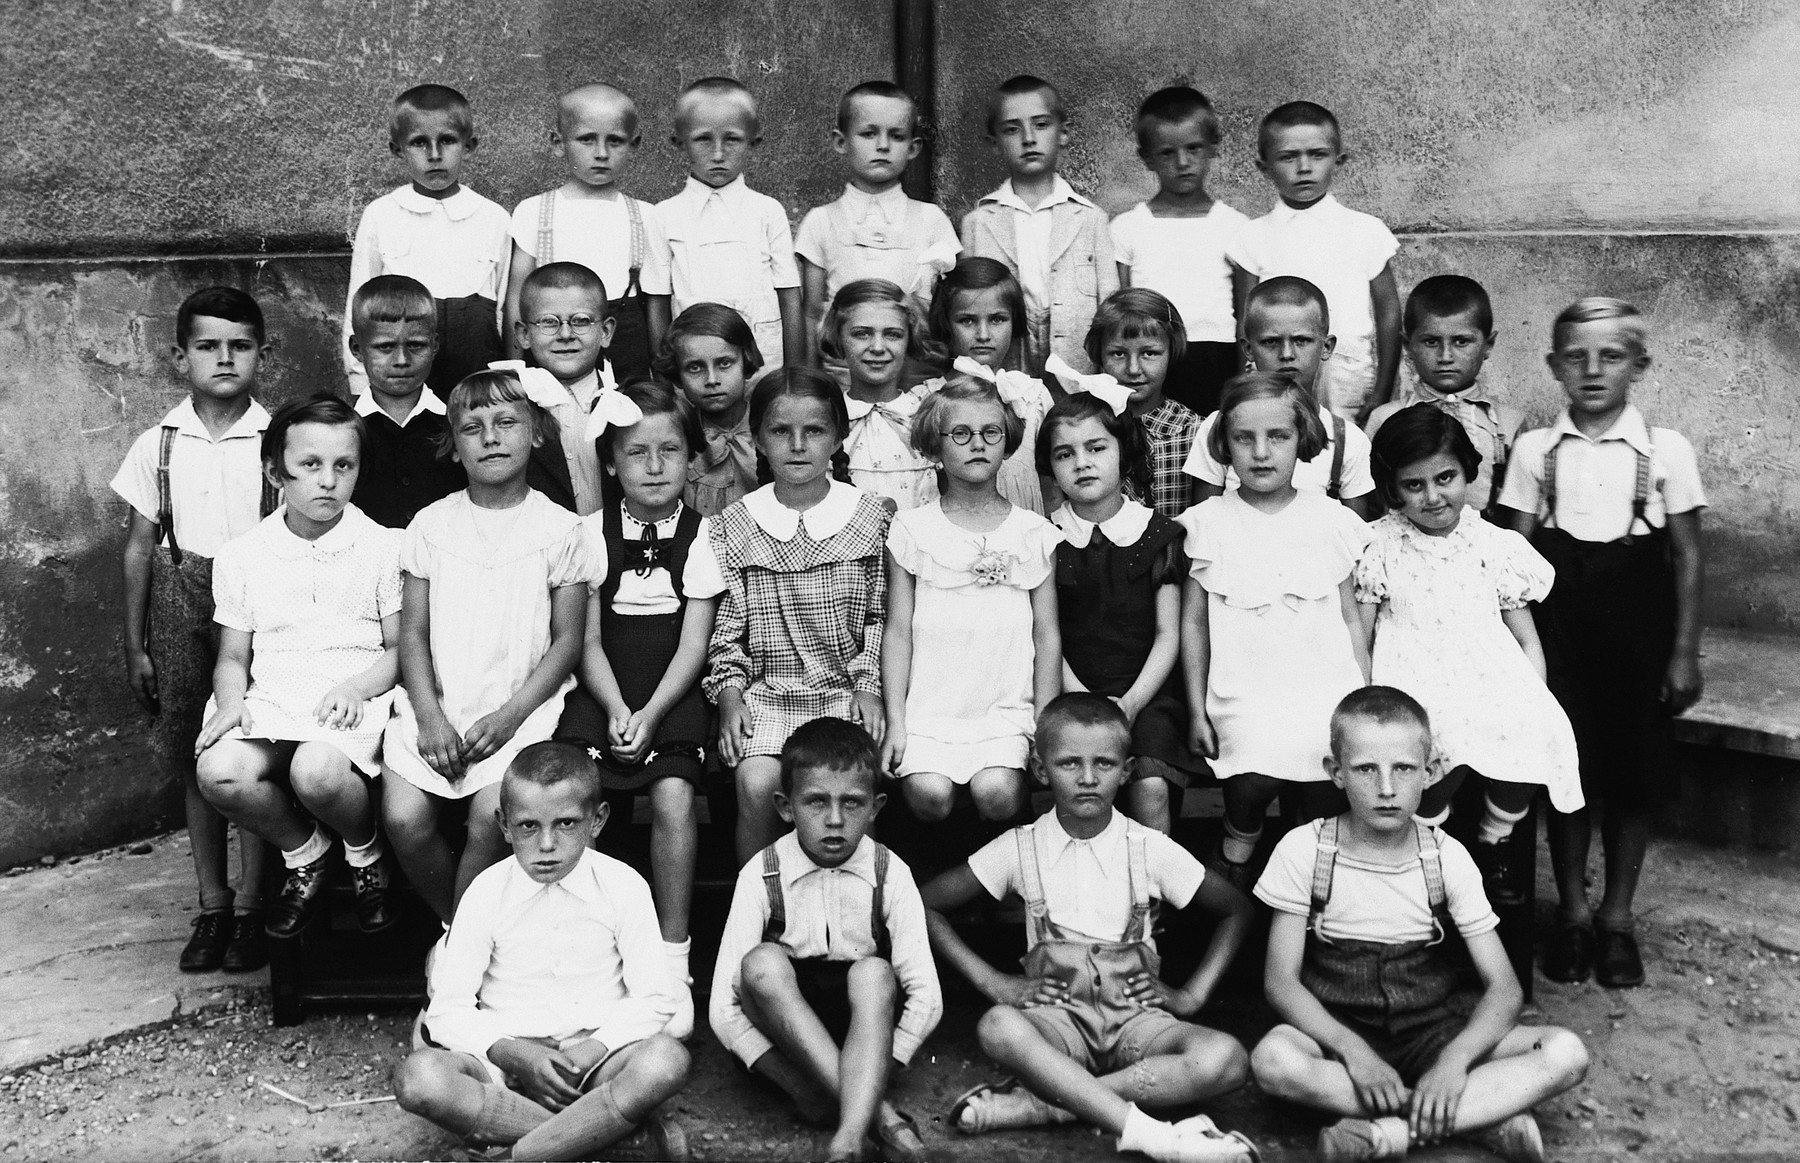 Class portrait of an elementary school in Bratislava.  Kitty Weichherz is sitting in the second row on the far right.  This photo was taken from the diary of Kitty's life written by her father, Bela Weichherz.